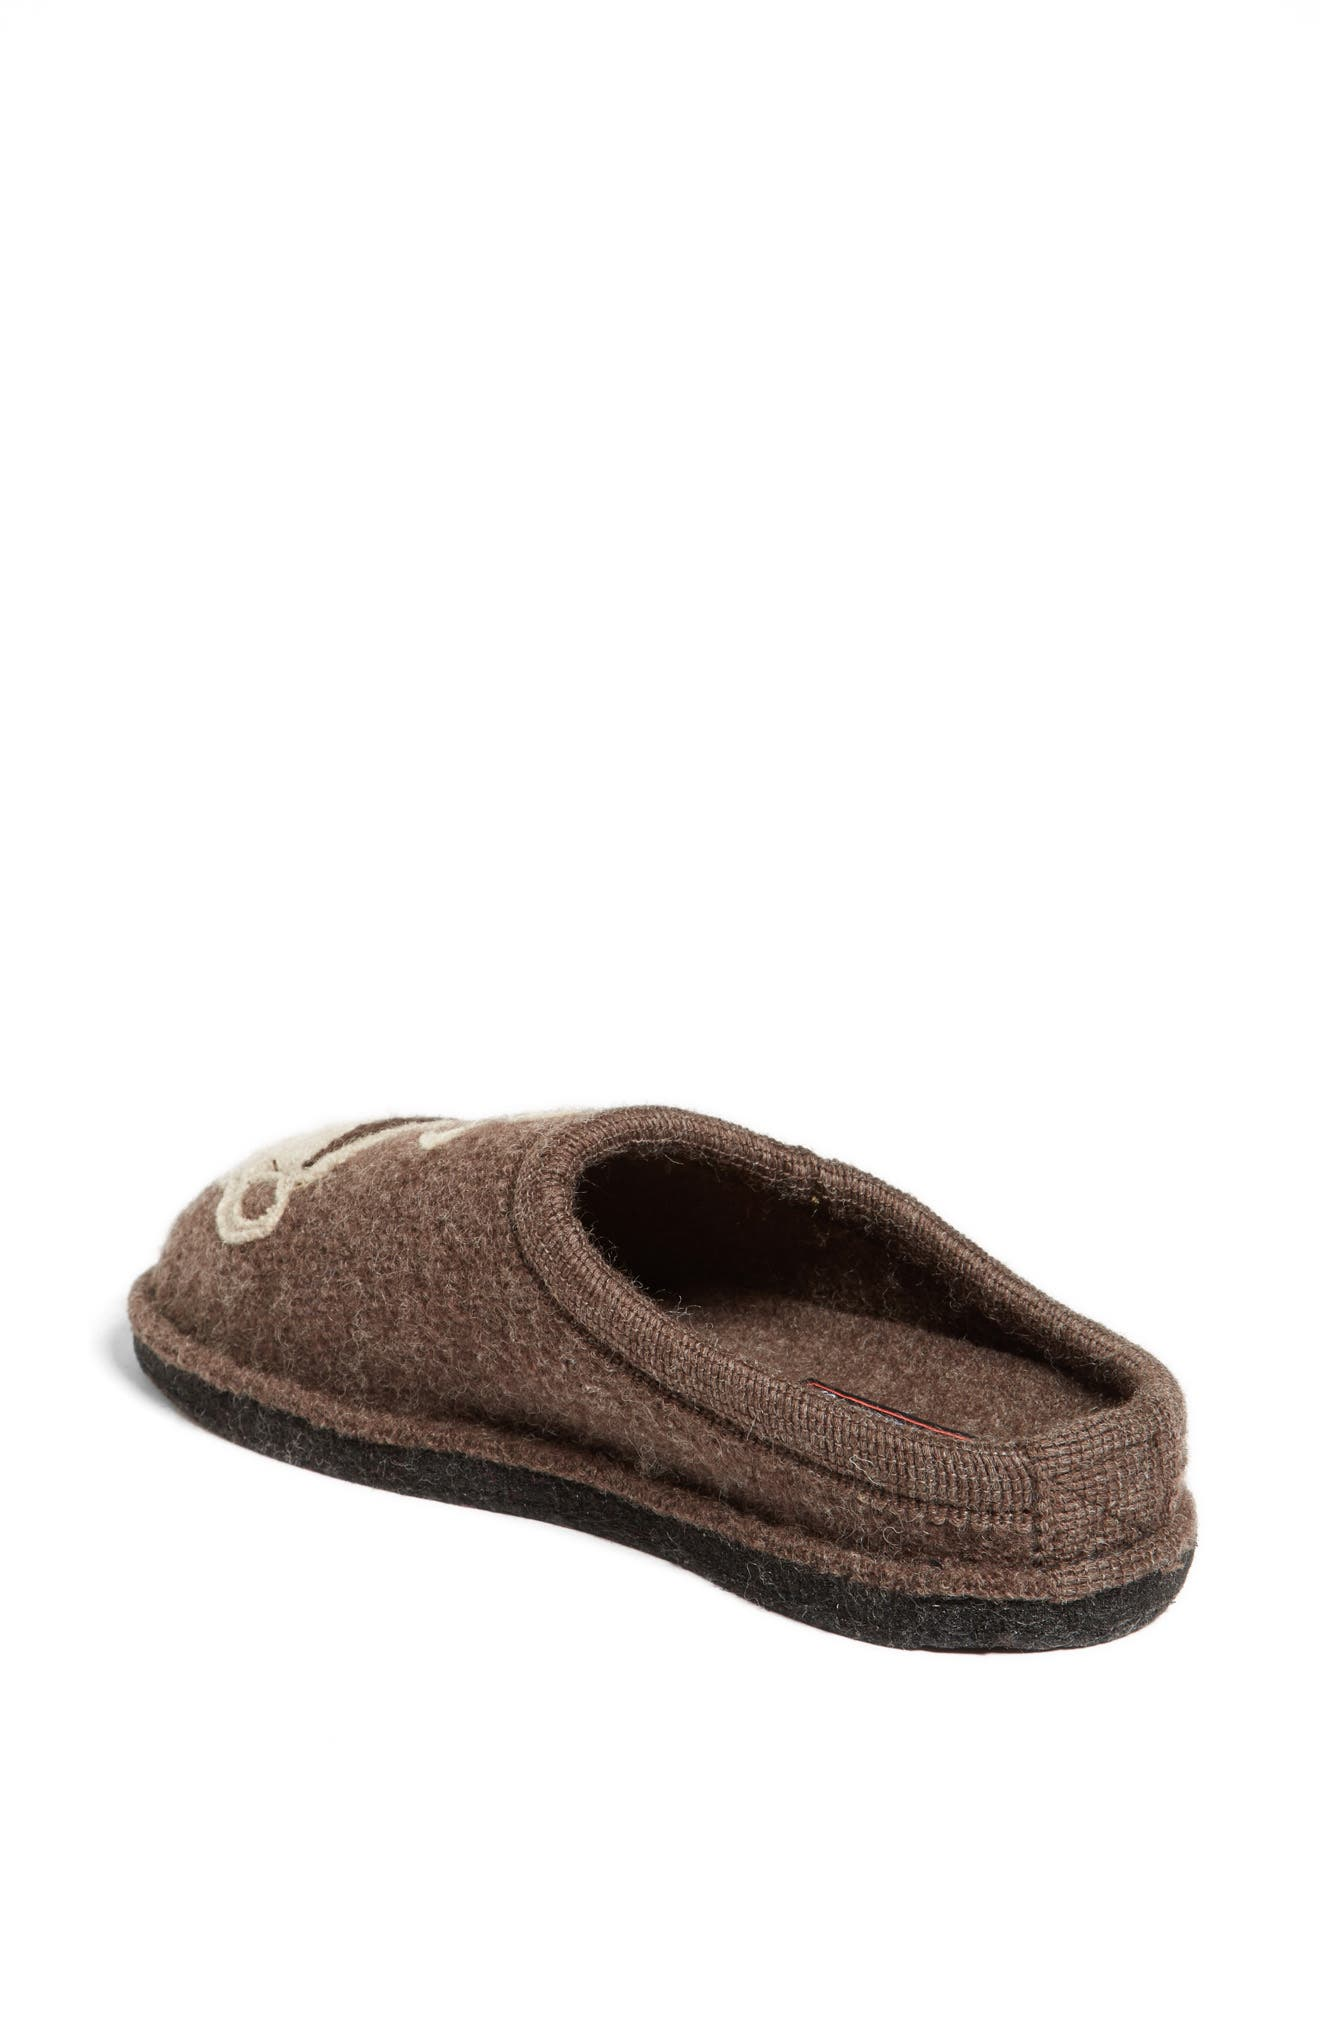 HAFLINGER 'Coffee' Slipper, Main, color, EARTH WOOL